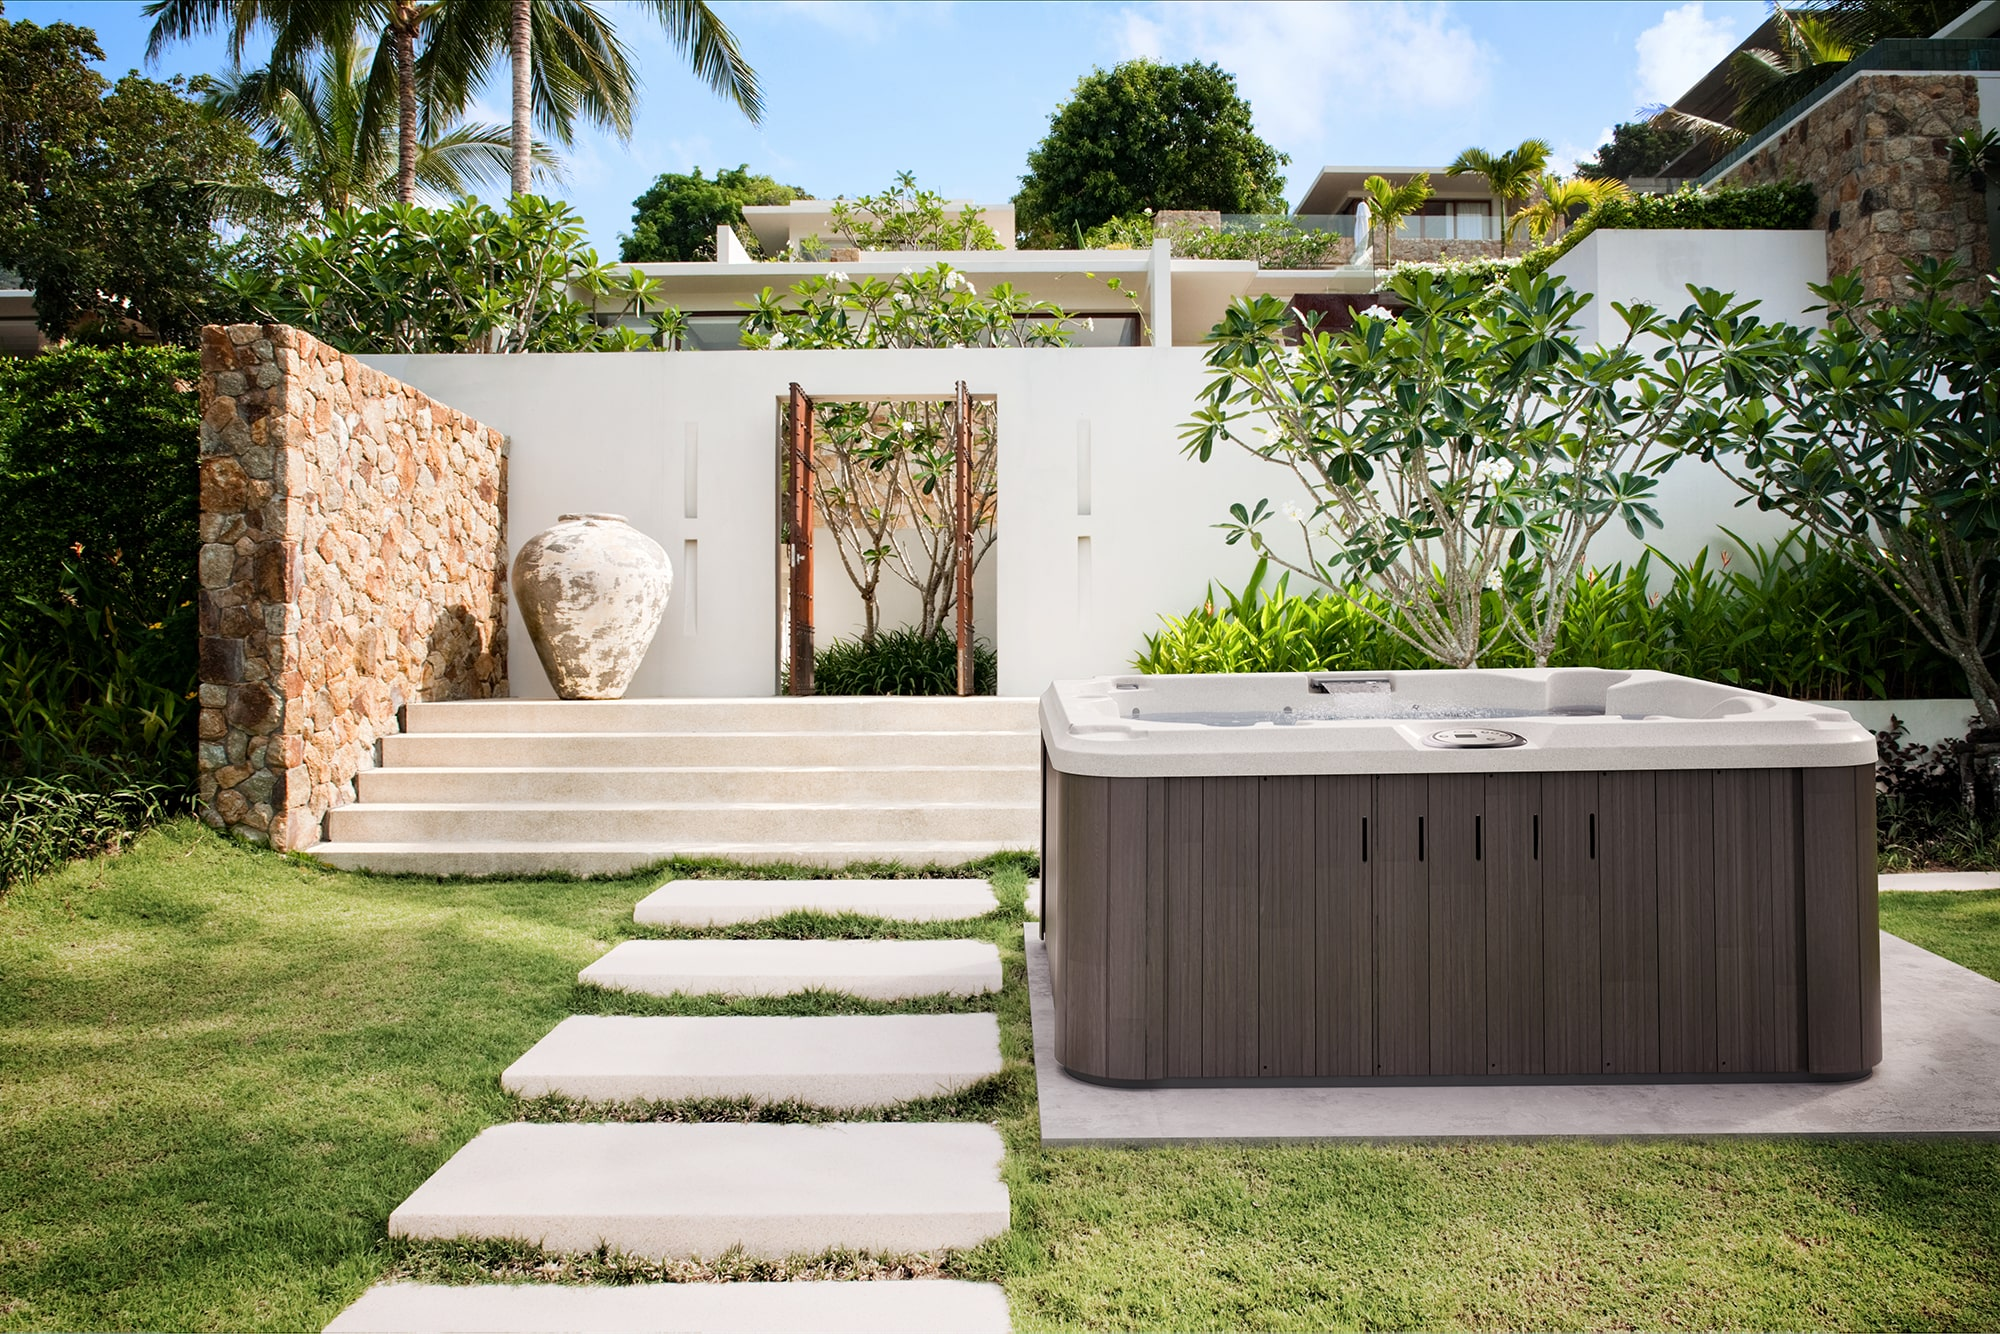 Jacuzzi Hot Tub Installation Outdoors